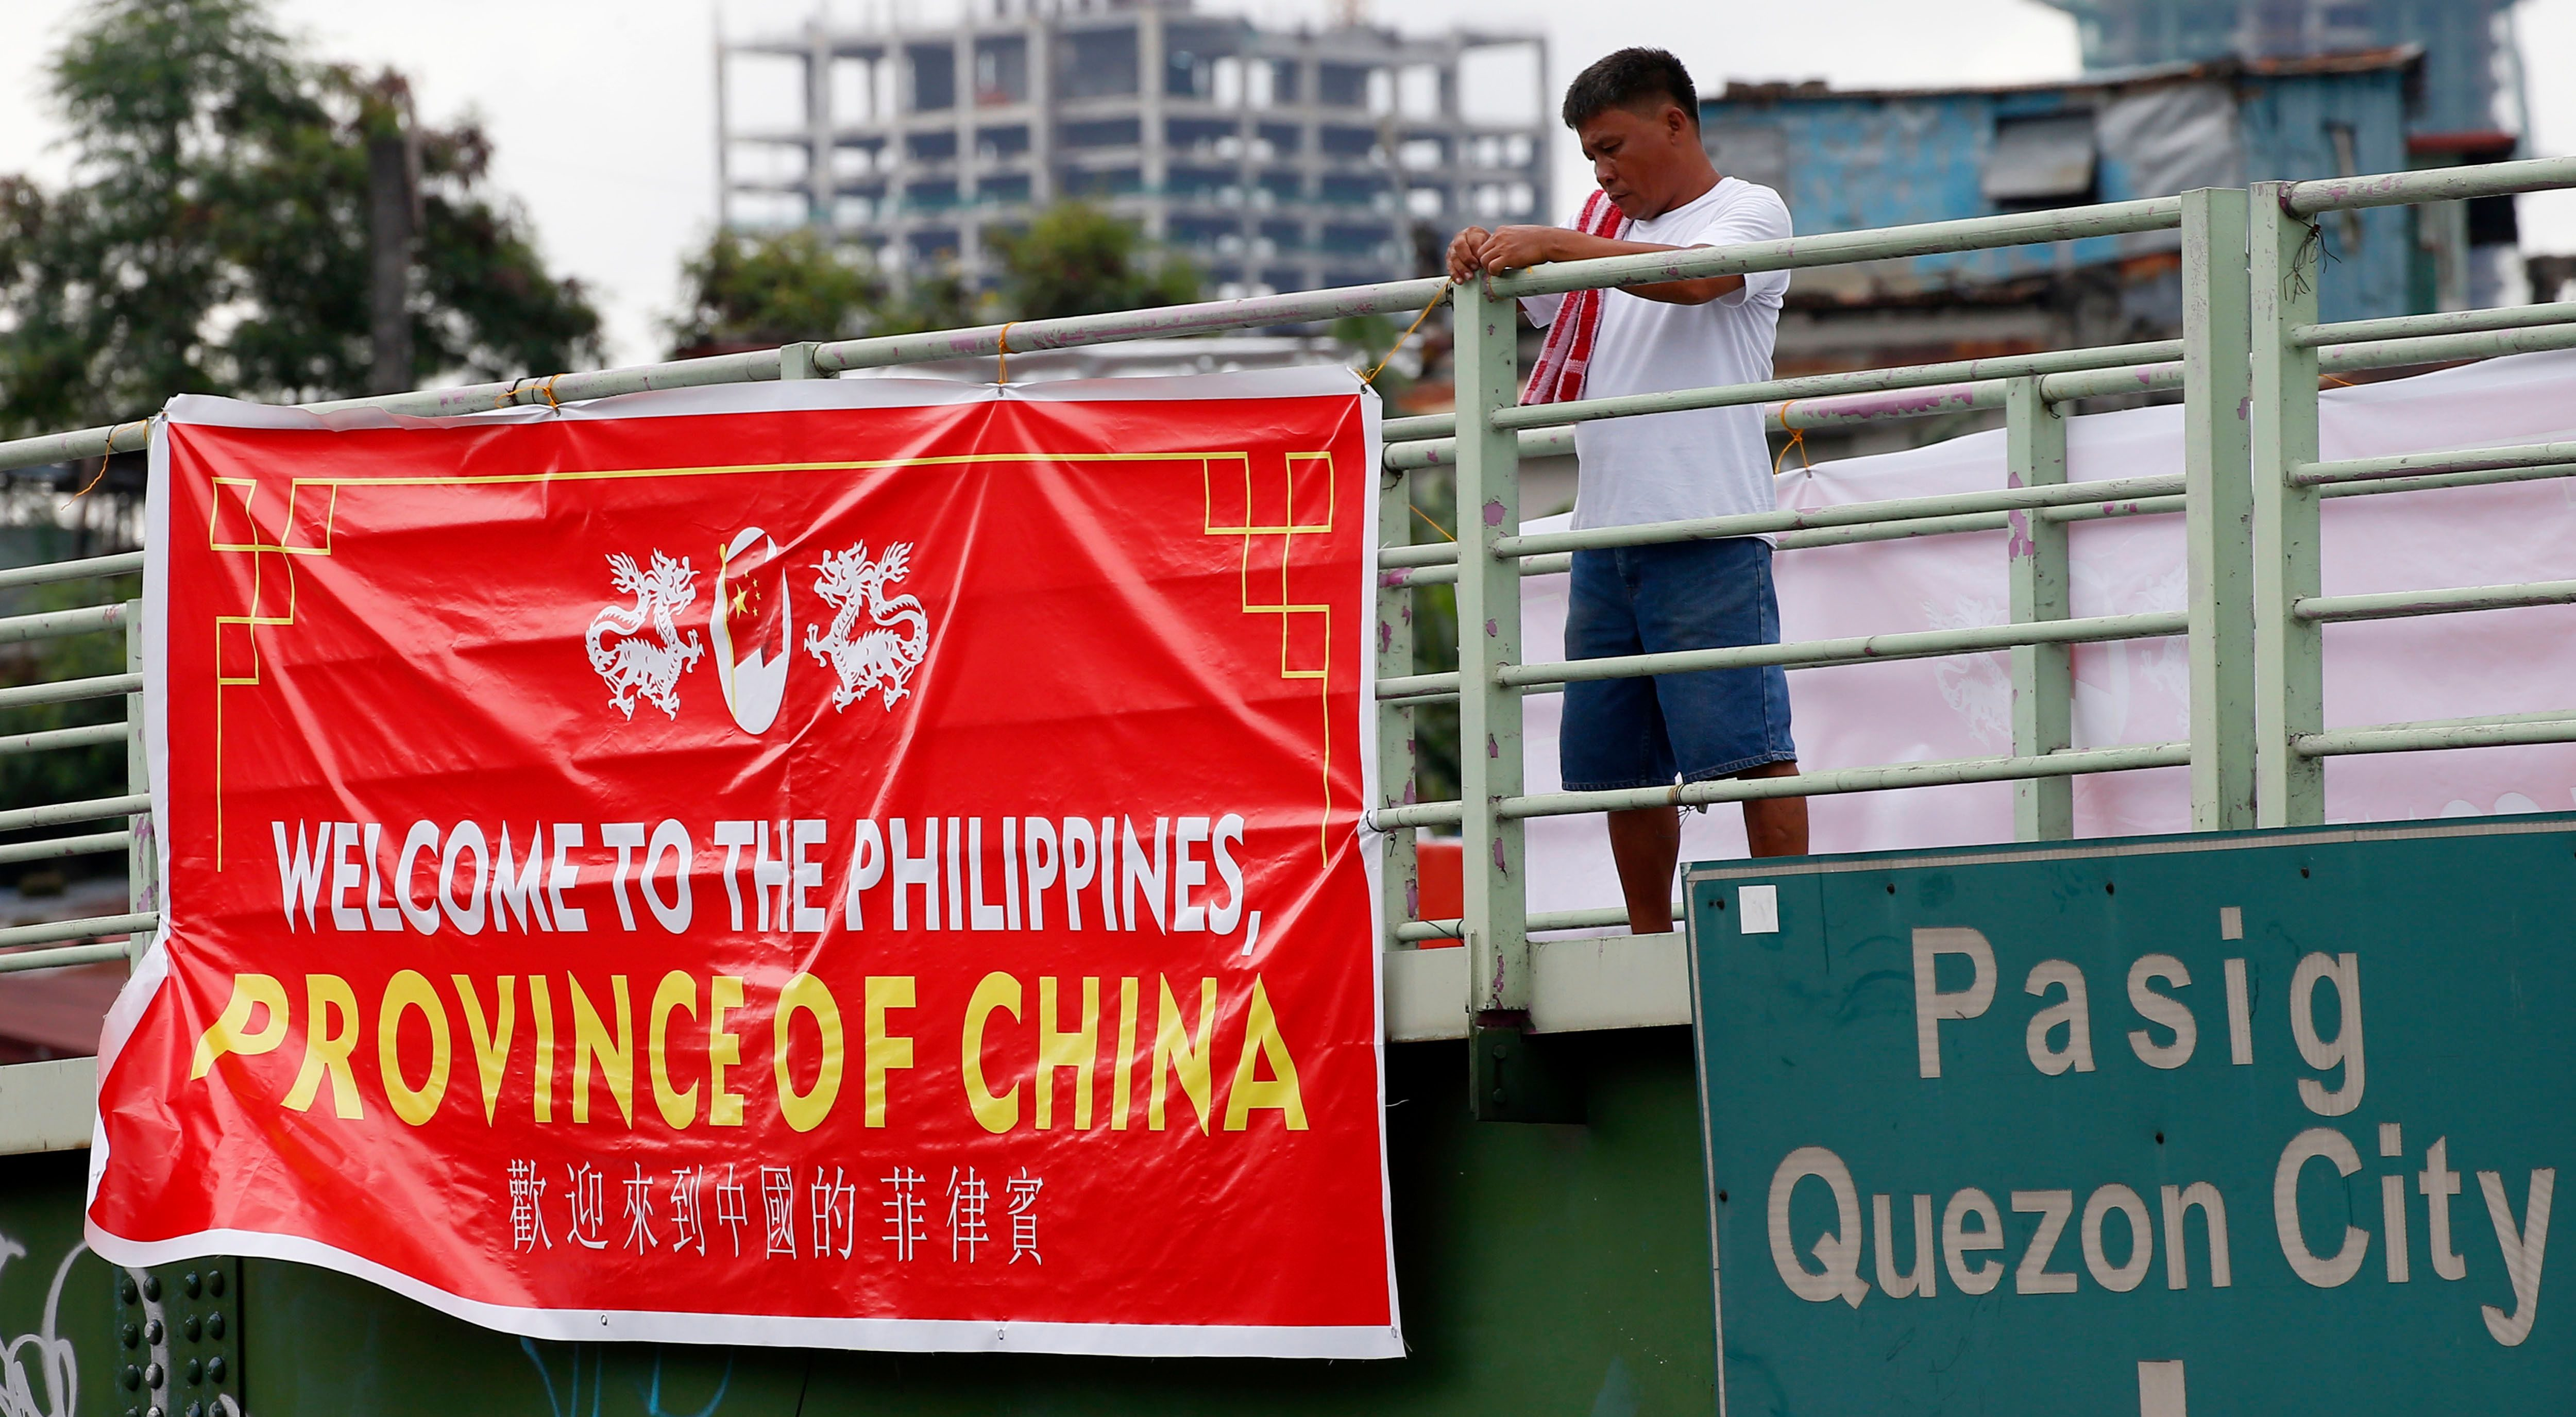 """A man tries to remove a tarpaulin banner with the words """"Welcome to the Philippines, Province of China"""" that was hung from an overpass Thursday, July 12, 2018, in Manila, Philippines. Similar banners have been seen in Manila Thursday which coincided with the second anniversary of the United Nations Permanent Court of Arbitration's decision upholding the Philippines' territorial rights on some islands, shoals, and reefs in the disputed Spratlys Group of islands in the South China Sea. The decision was shelved by President Rodrigo Duterte and was never recognized by China."""